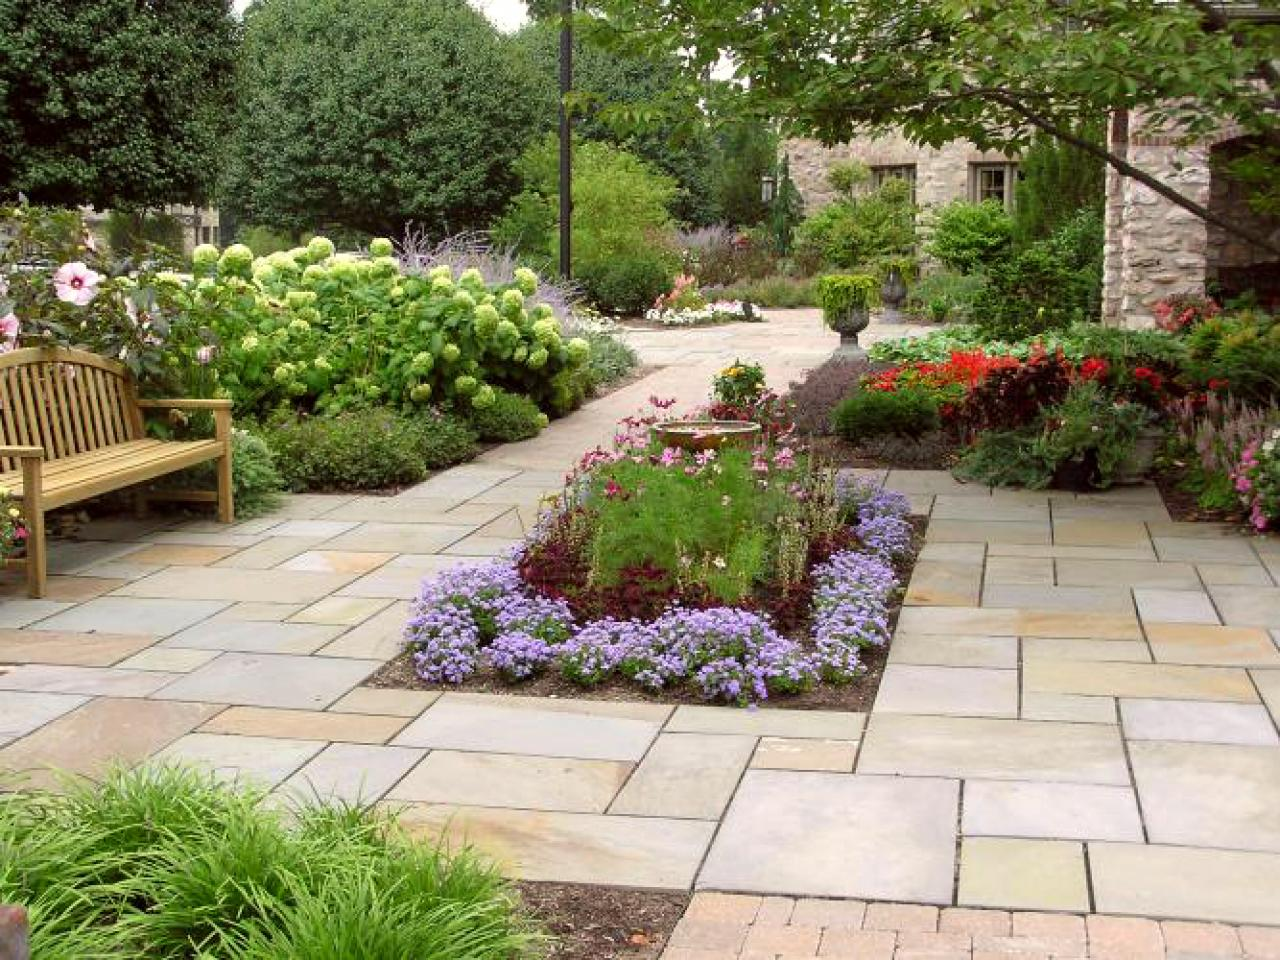 Patio design ideas and inspiration hgtv for Patio inspiration ideas